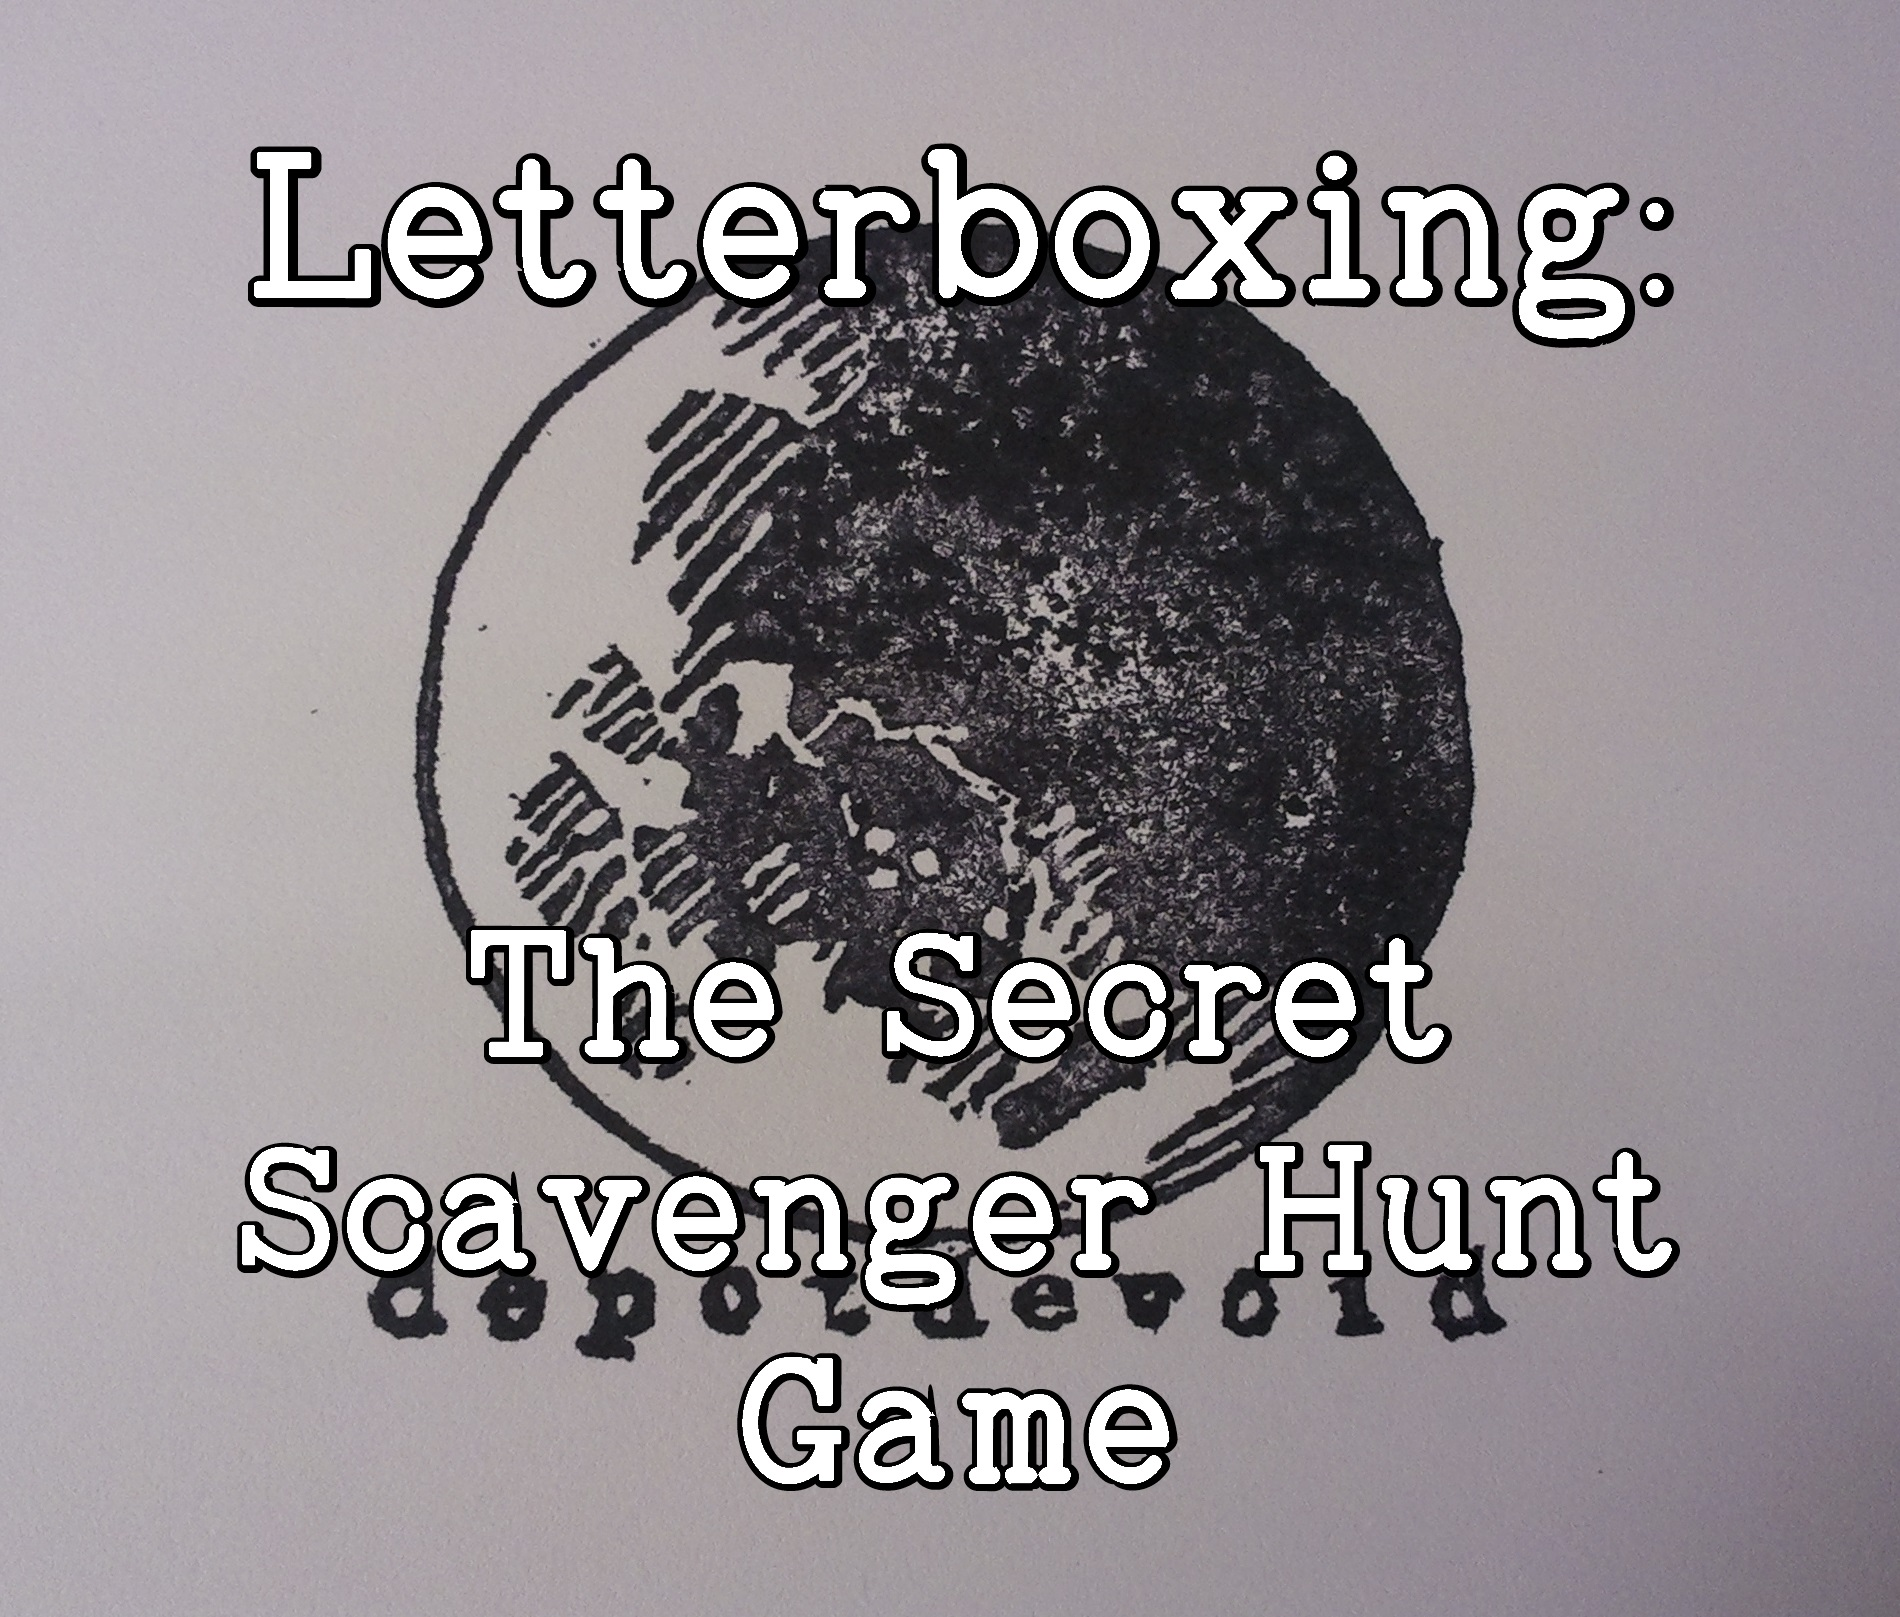 Letterboxing:  The Secret Scavenger Hunt Game